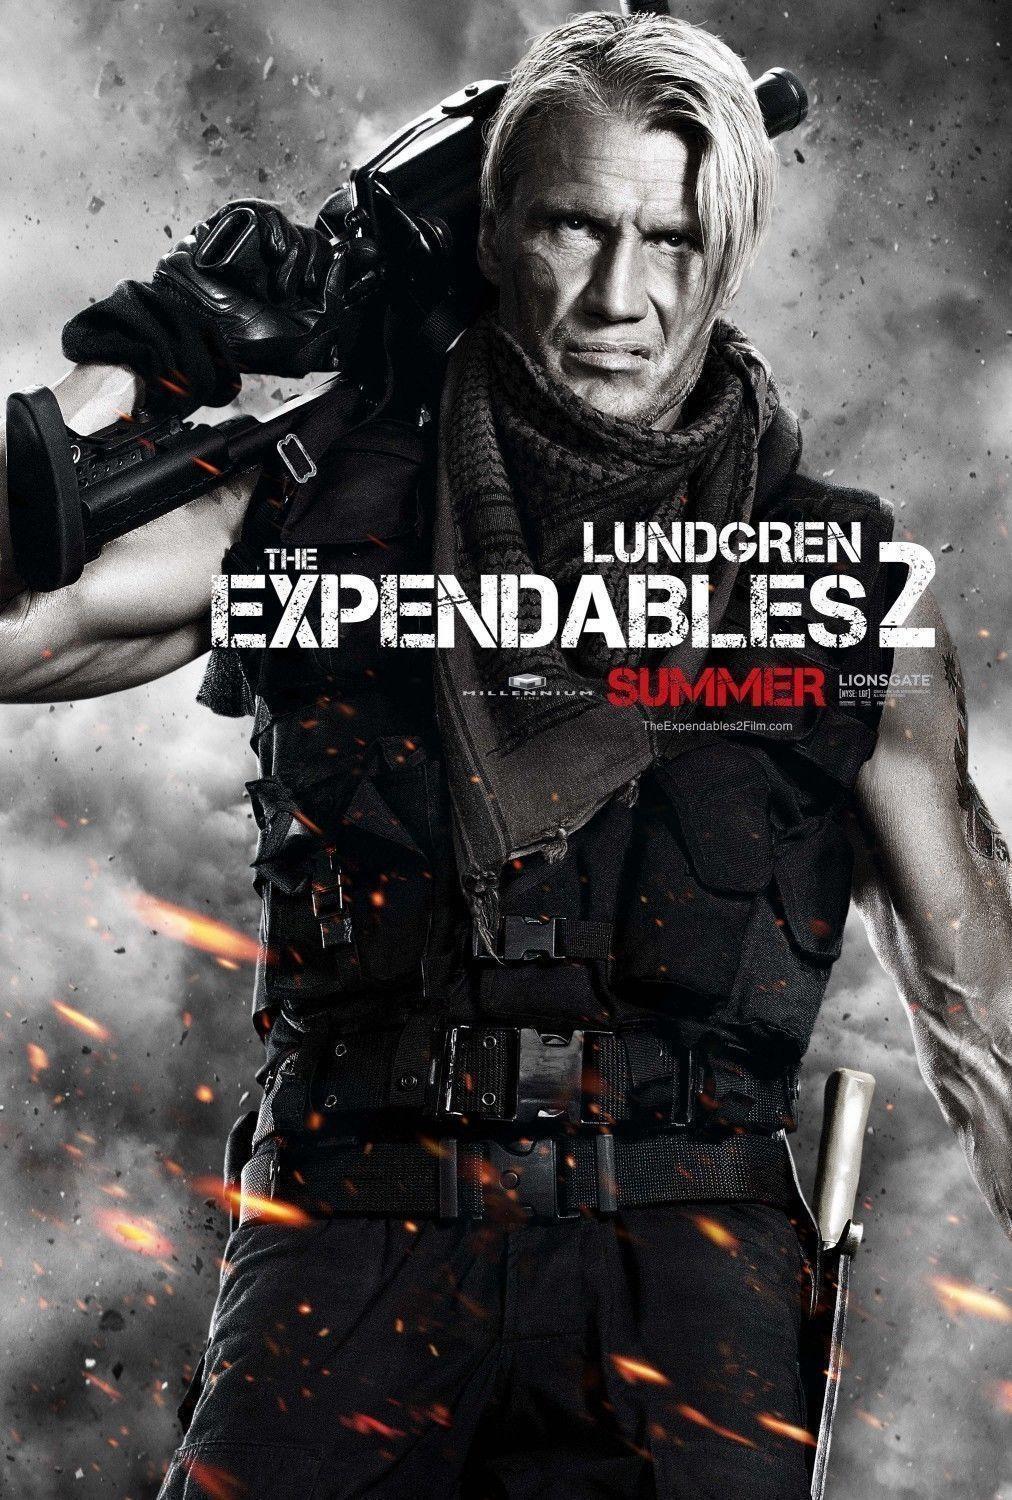 dc47b4e66 $2.89 - The Expendables 2 - Movie Poster - Flyer - 13.5X20 - Dolph Lundgren  #ebay #Collectibles